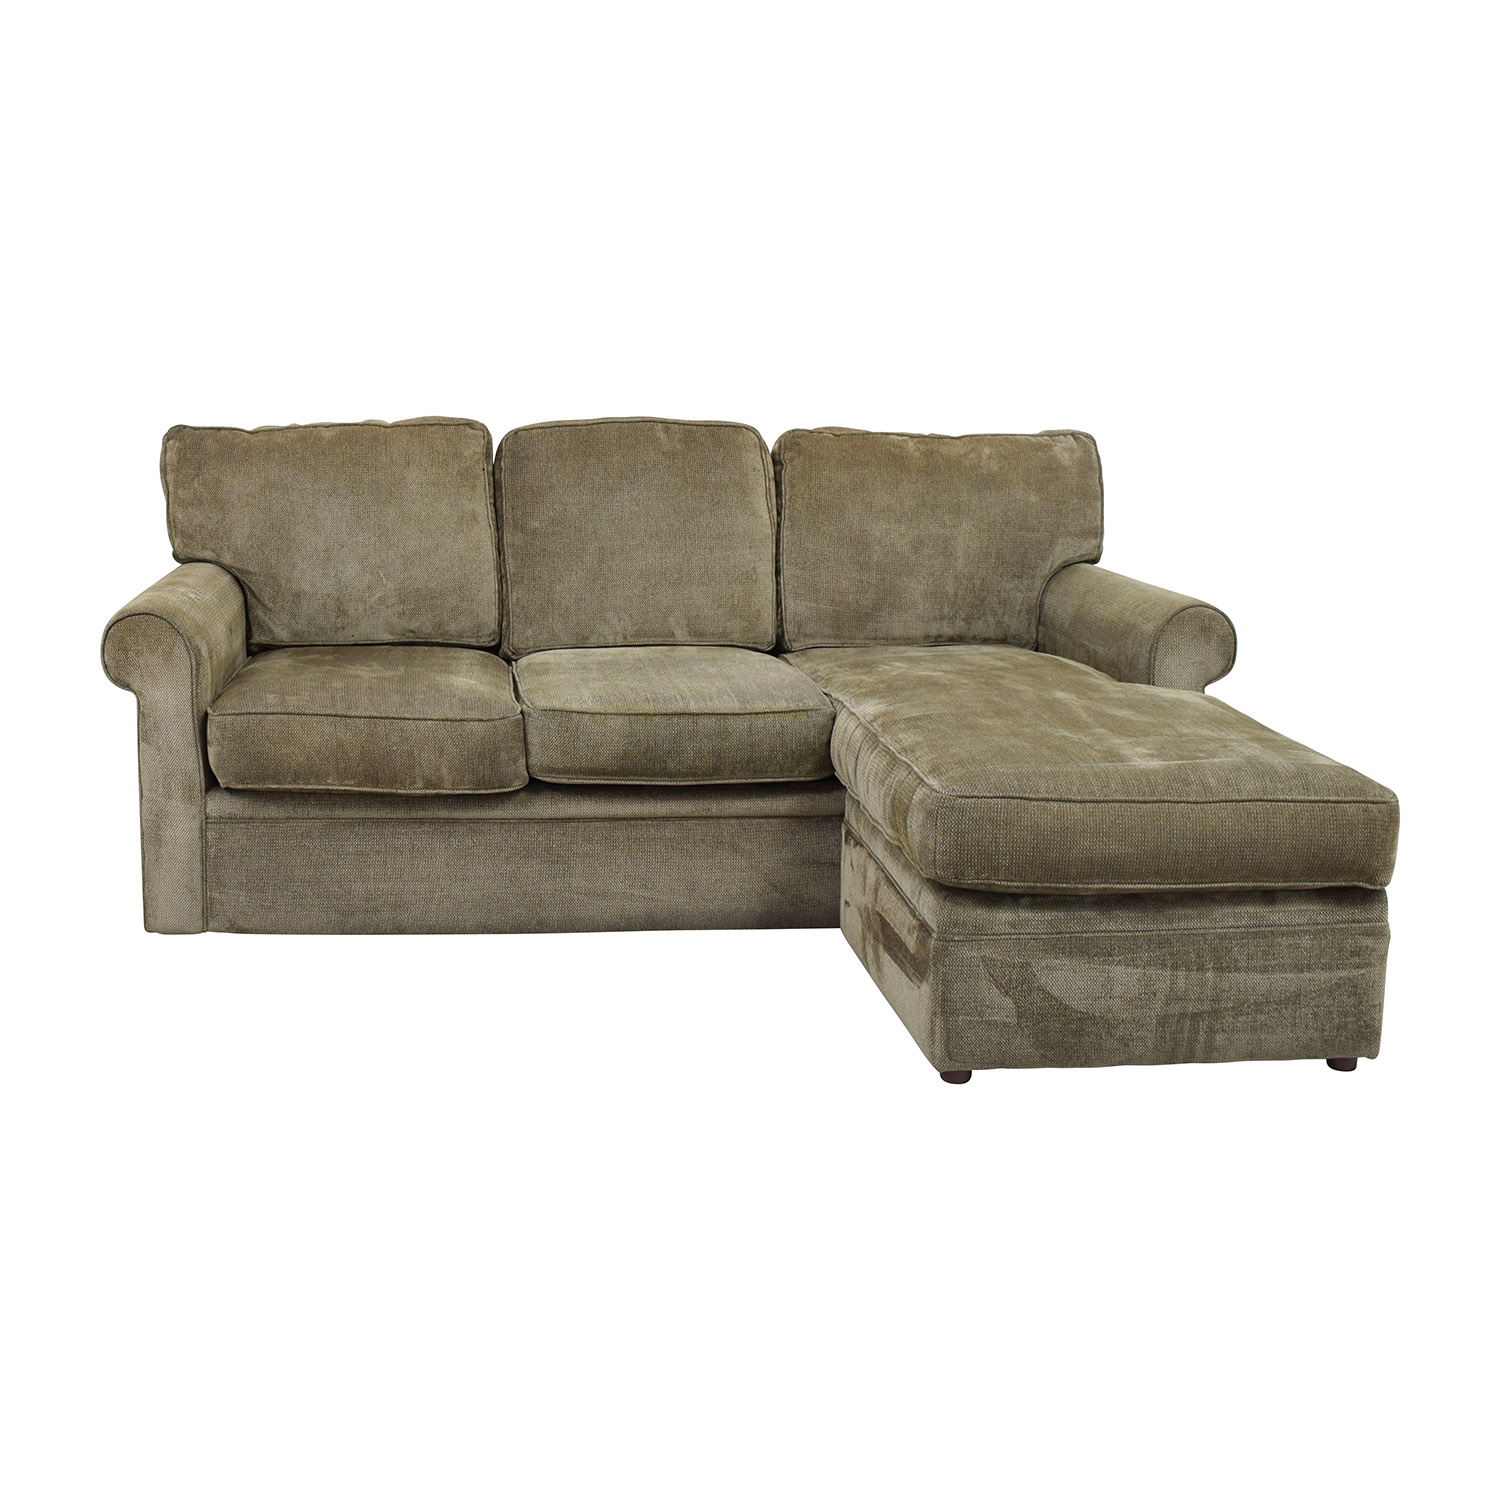 Shop Rowe Furniture Green Sectional With Curved Arms Rowe Furniture Sofas  ...